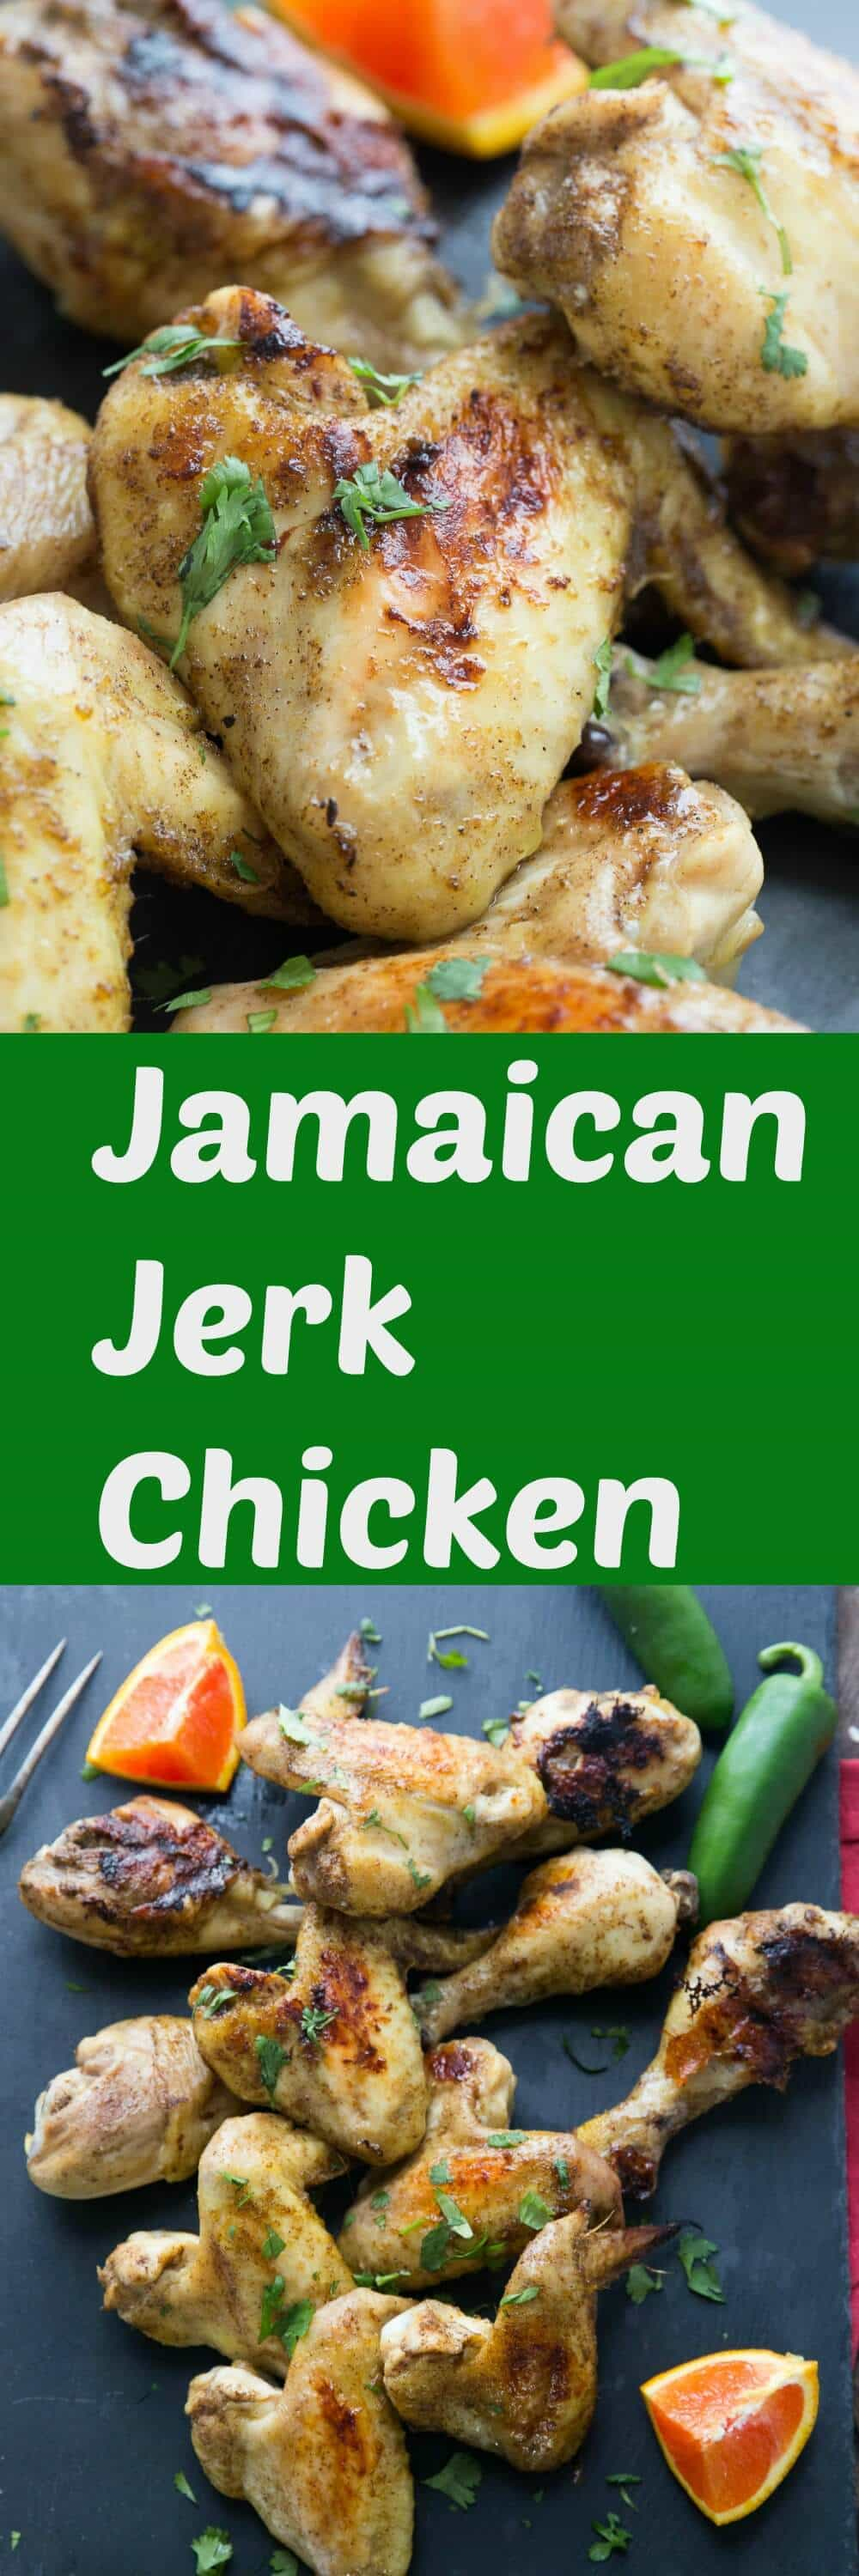 Want a taste of the Caribbean? This Jamaican Jerk chicken recipe has a little sweet and a little spicy.. It as intensely flavorful way to enjoy chicken! lemonsforlulu.com